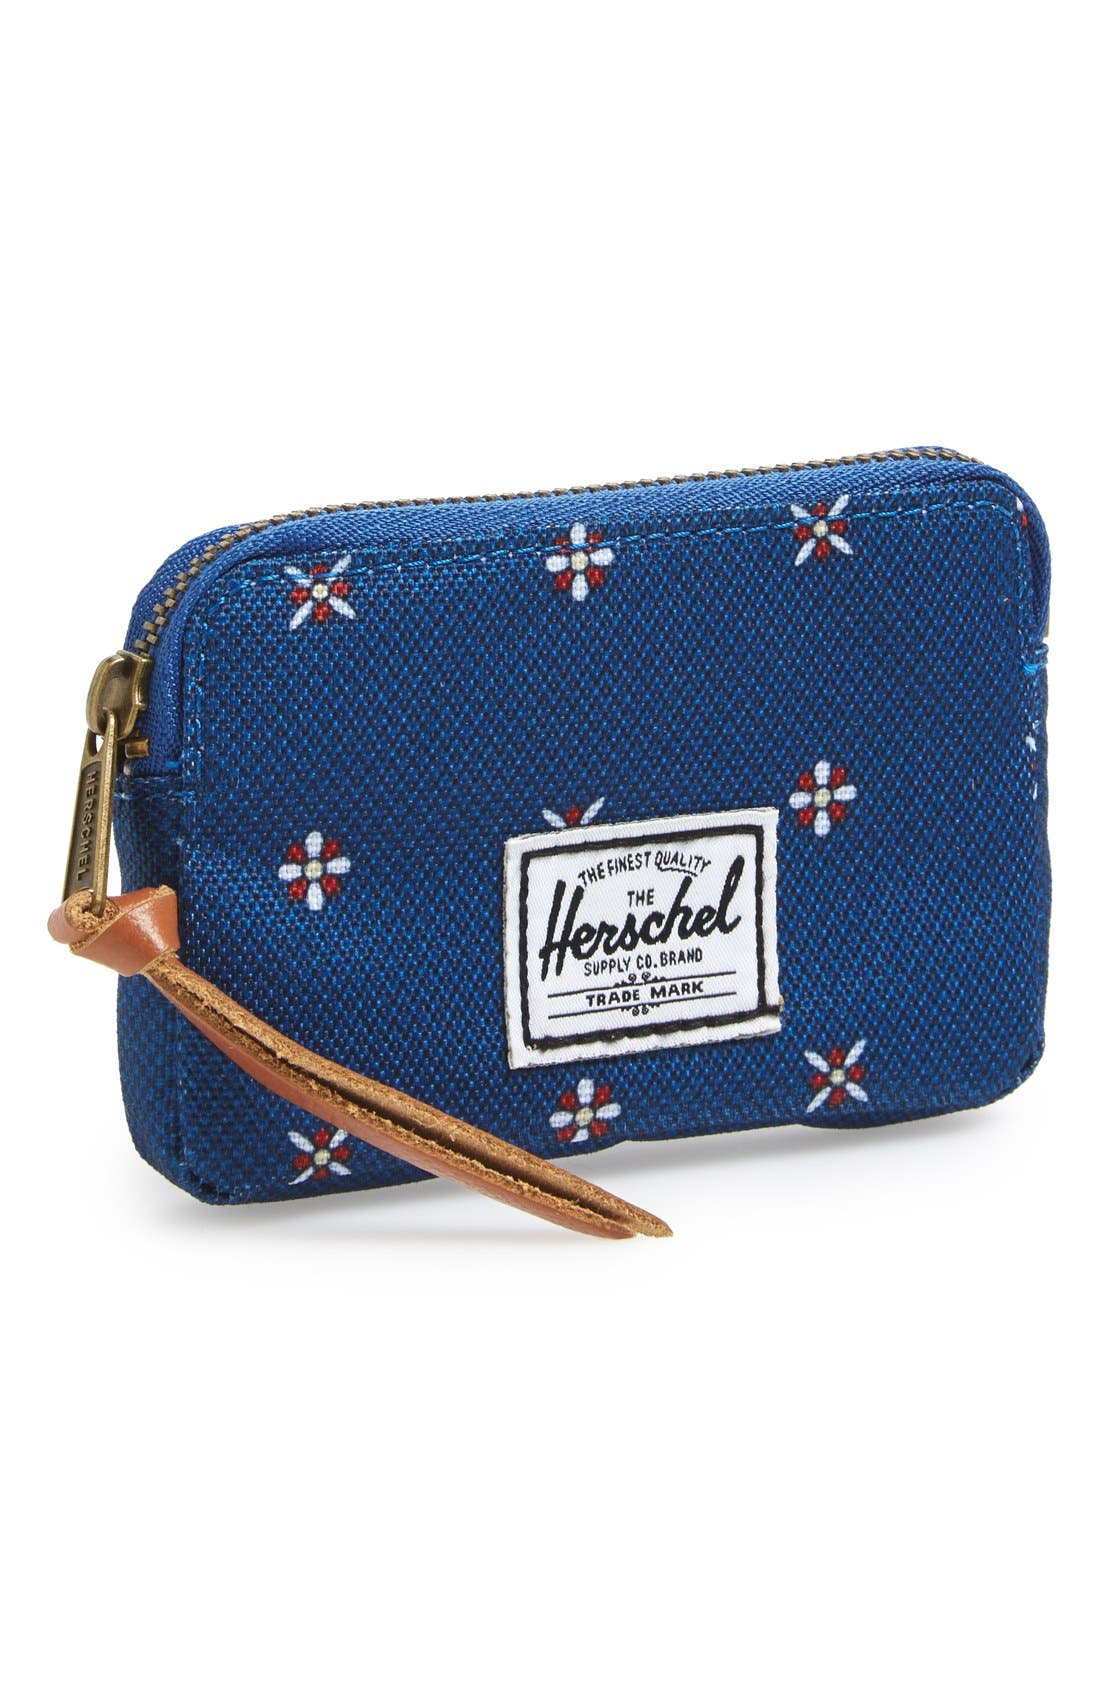 Alternate Image 1 Selected - Herschel Supply Co. 'Oxford' Pouch Wallet